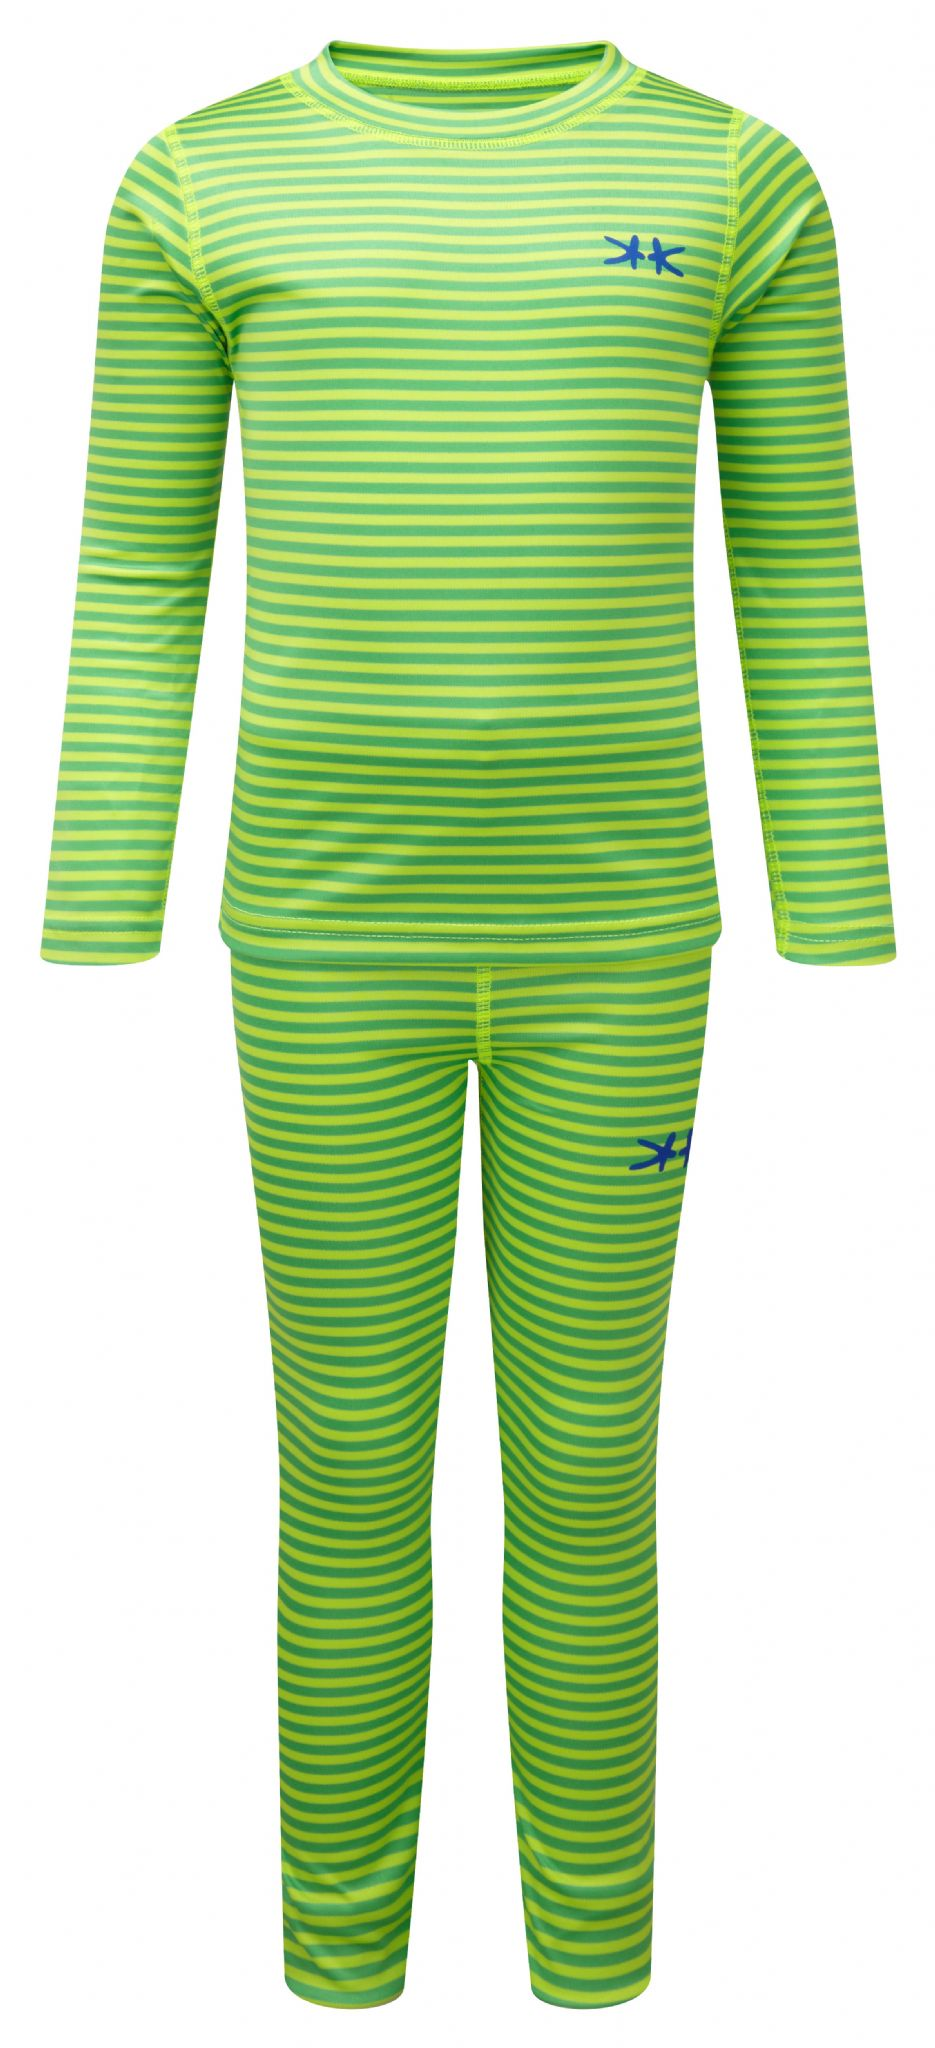 Duofold's warmest two layer cold weather thermal for those that like to Men's Ultra-Soft Micro-Fleece Lined Thermal Base Layer Top & Legging Set by 9M Clothing Company.